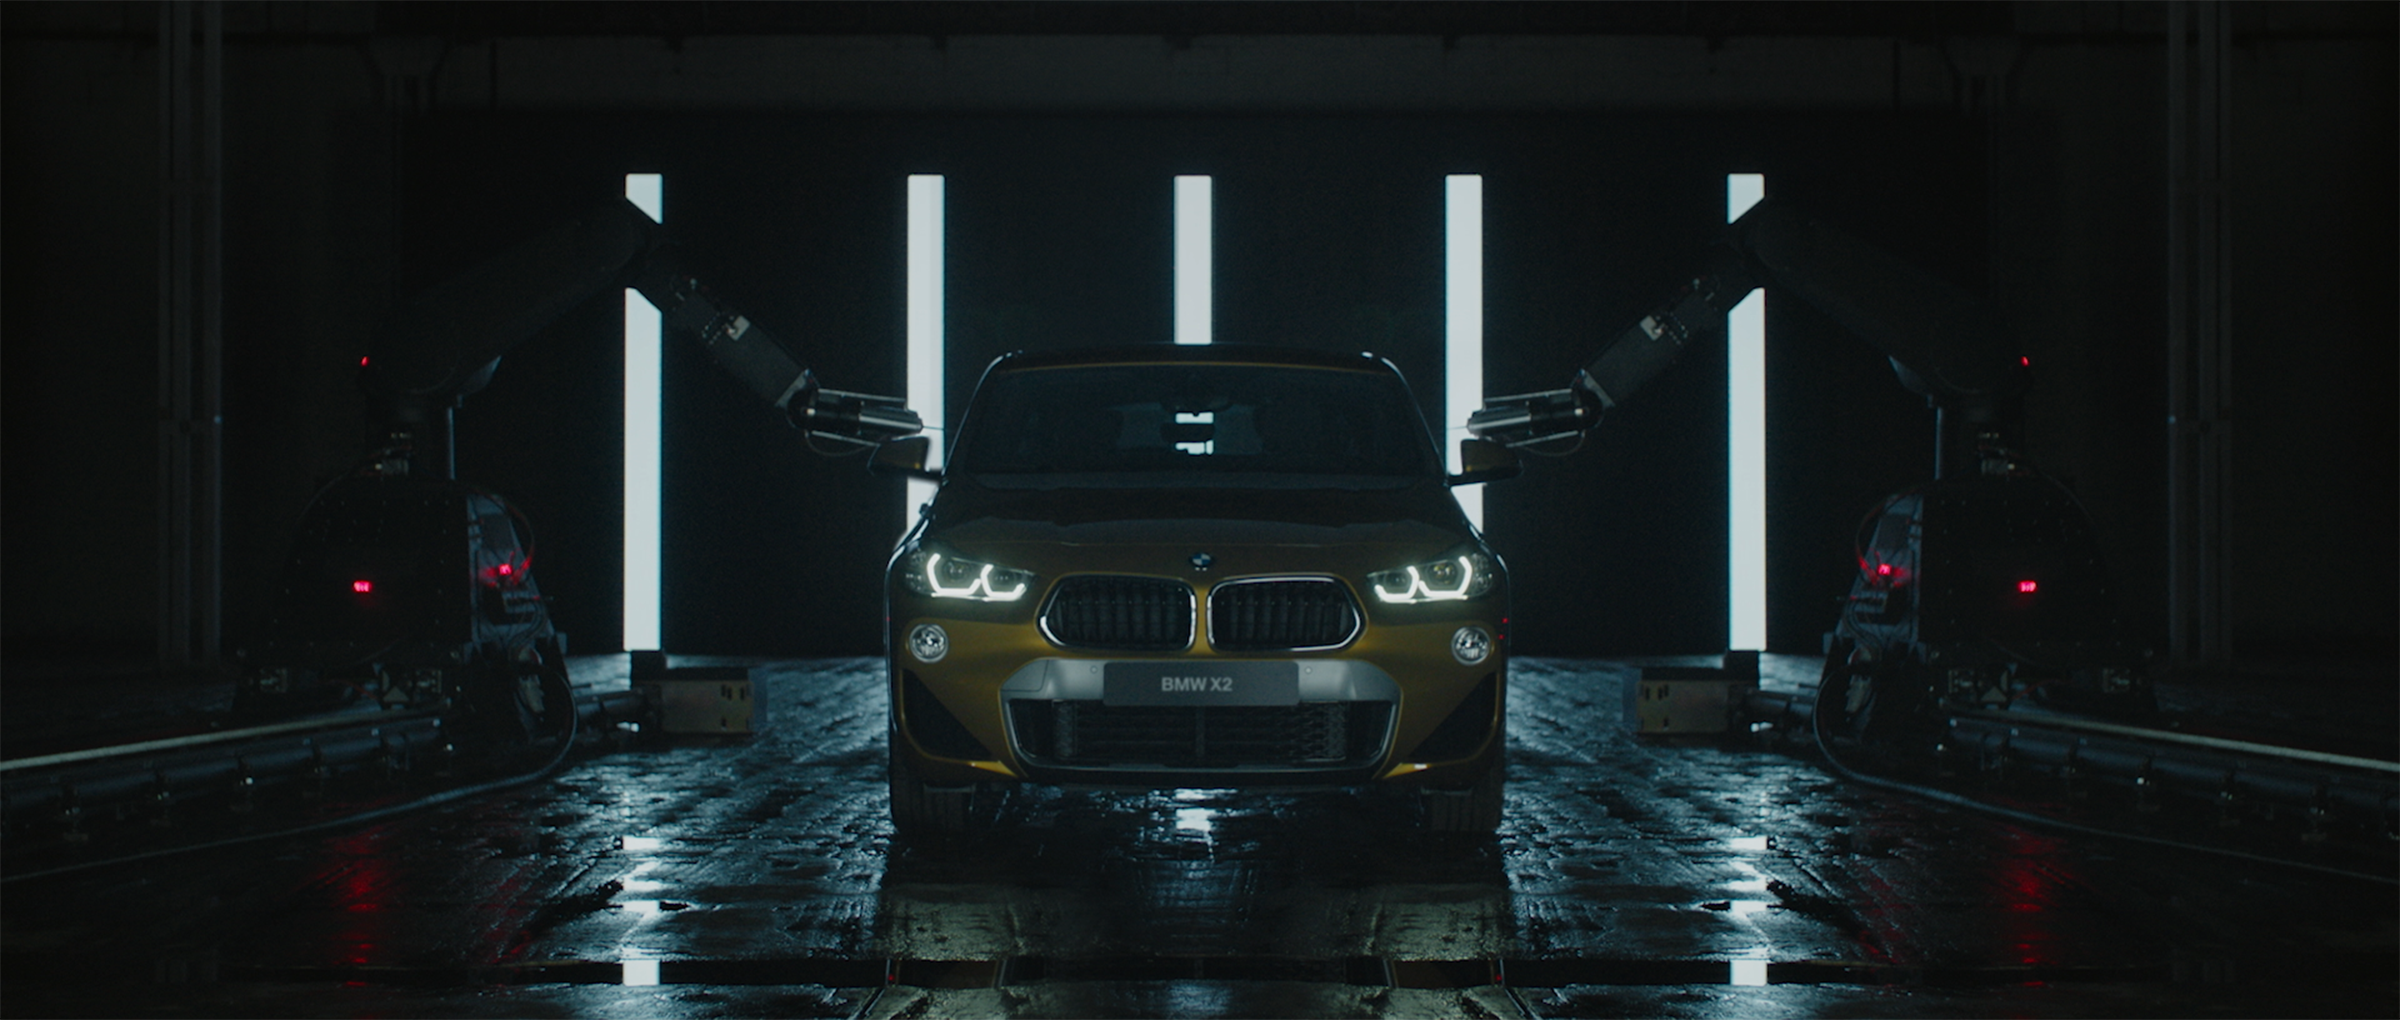 2BMW_X2_1920x816_prores@1,25x.png